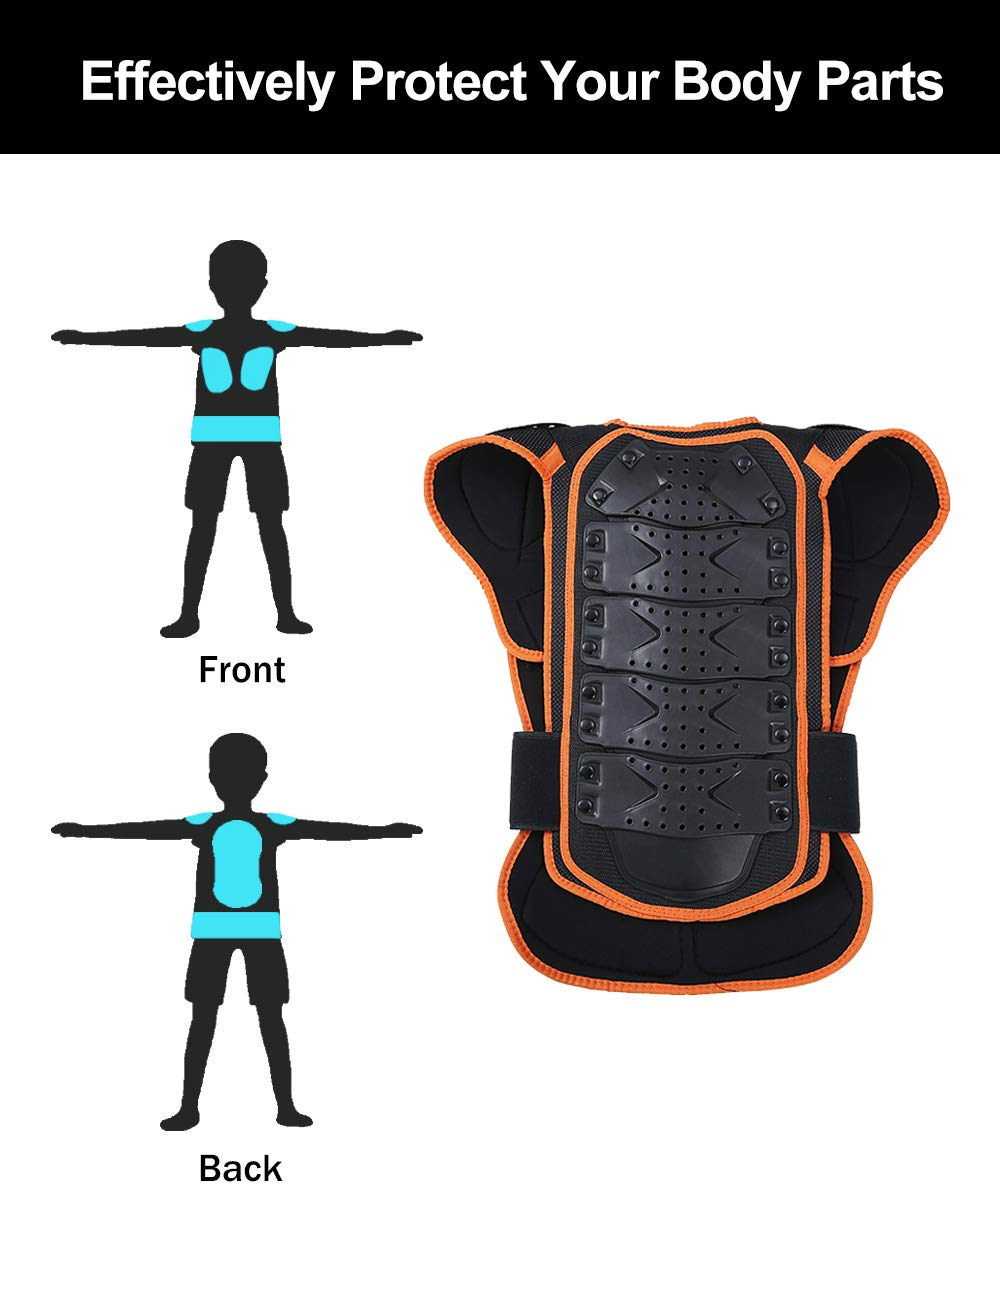 Children Protective Armor Chest Back Spine Protector Kids Motorbike Motorcycle Full Body Armor Vest Youth Protective Riding Biking Vest Jacket Motocross Gear Guard Dirt Bike Safety Armor Protection